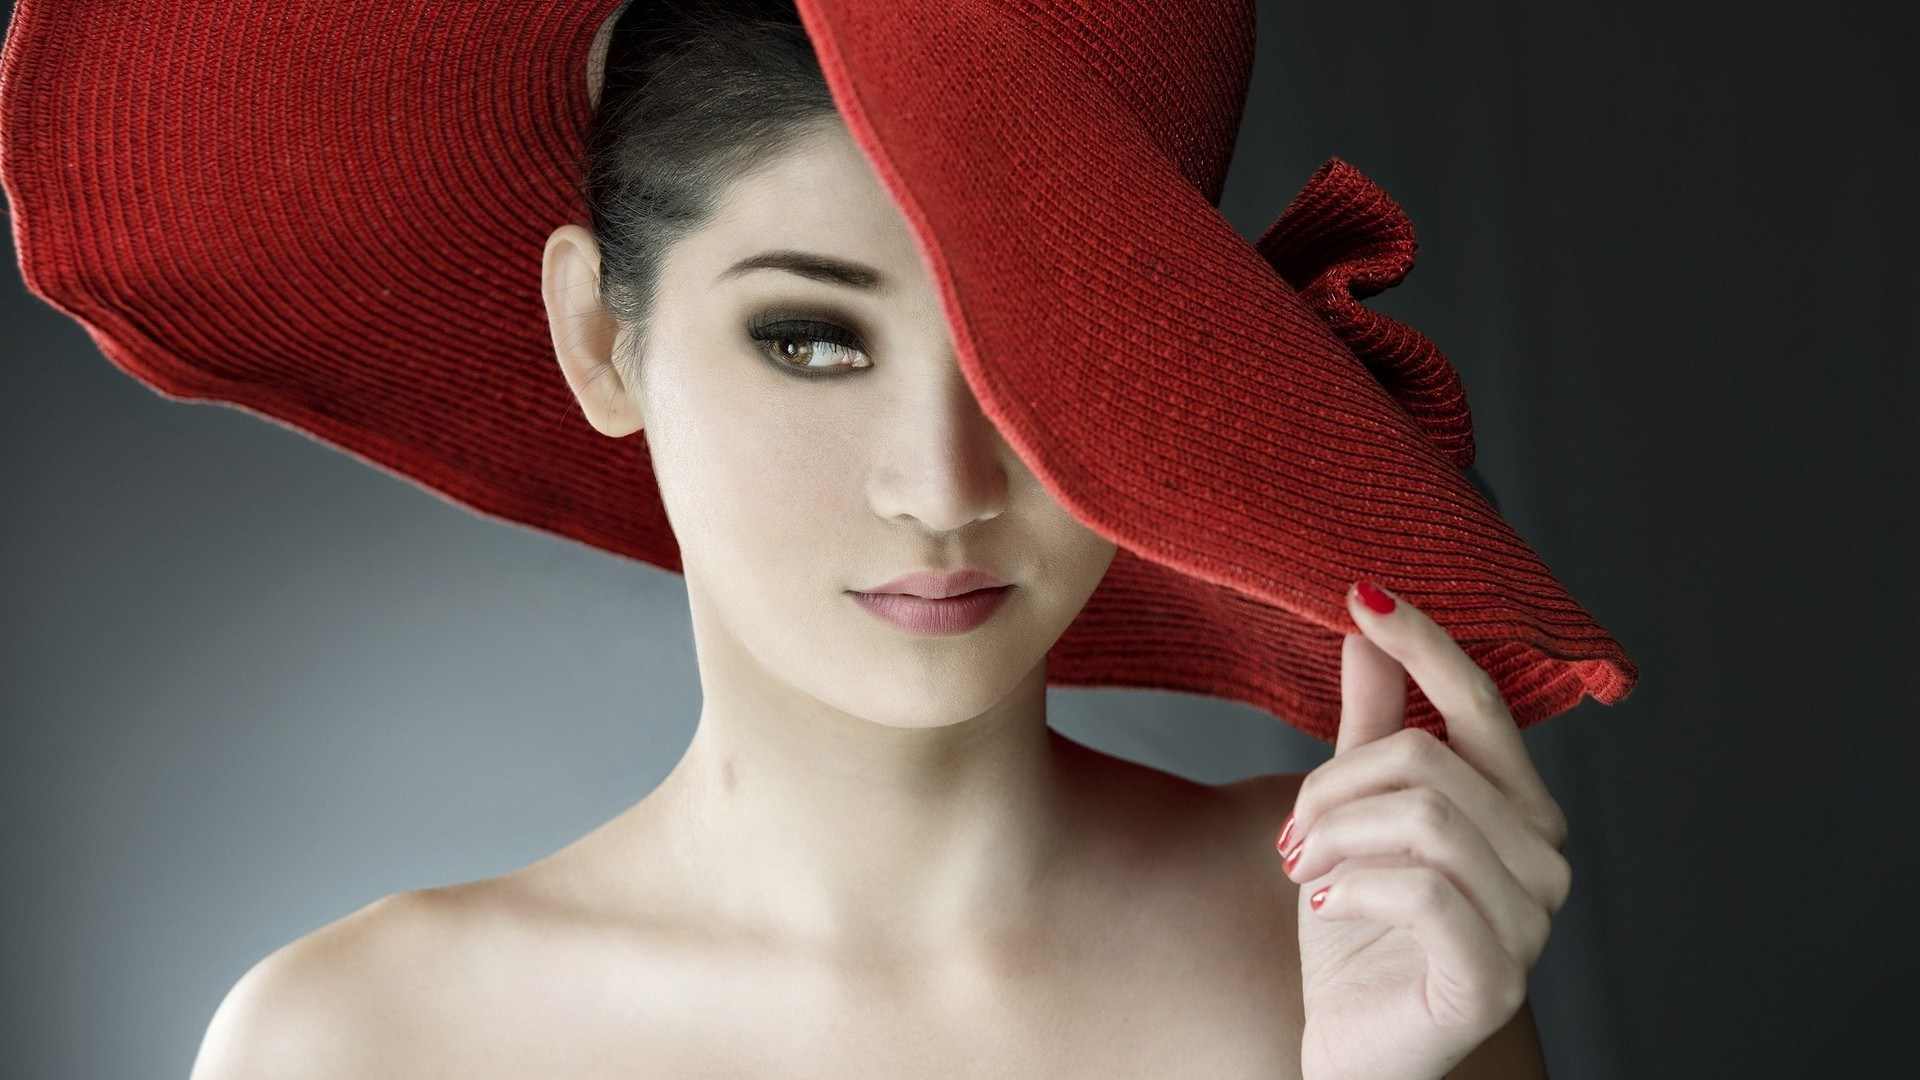 Fashion Red Hat Brunette Model Girl Portrait